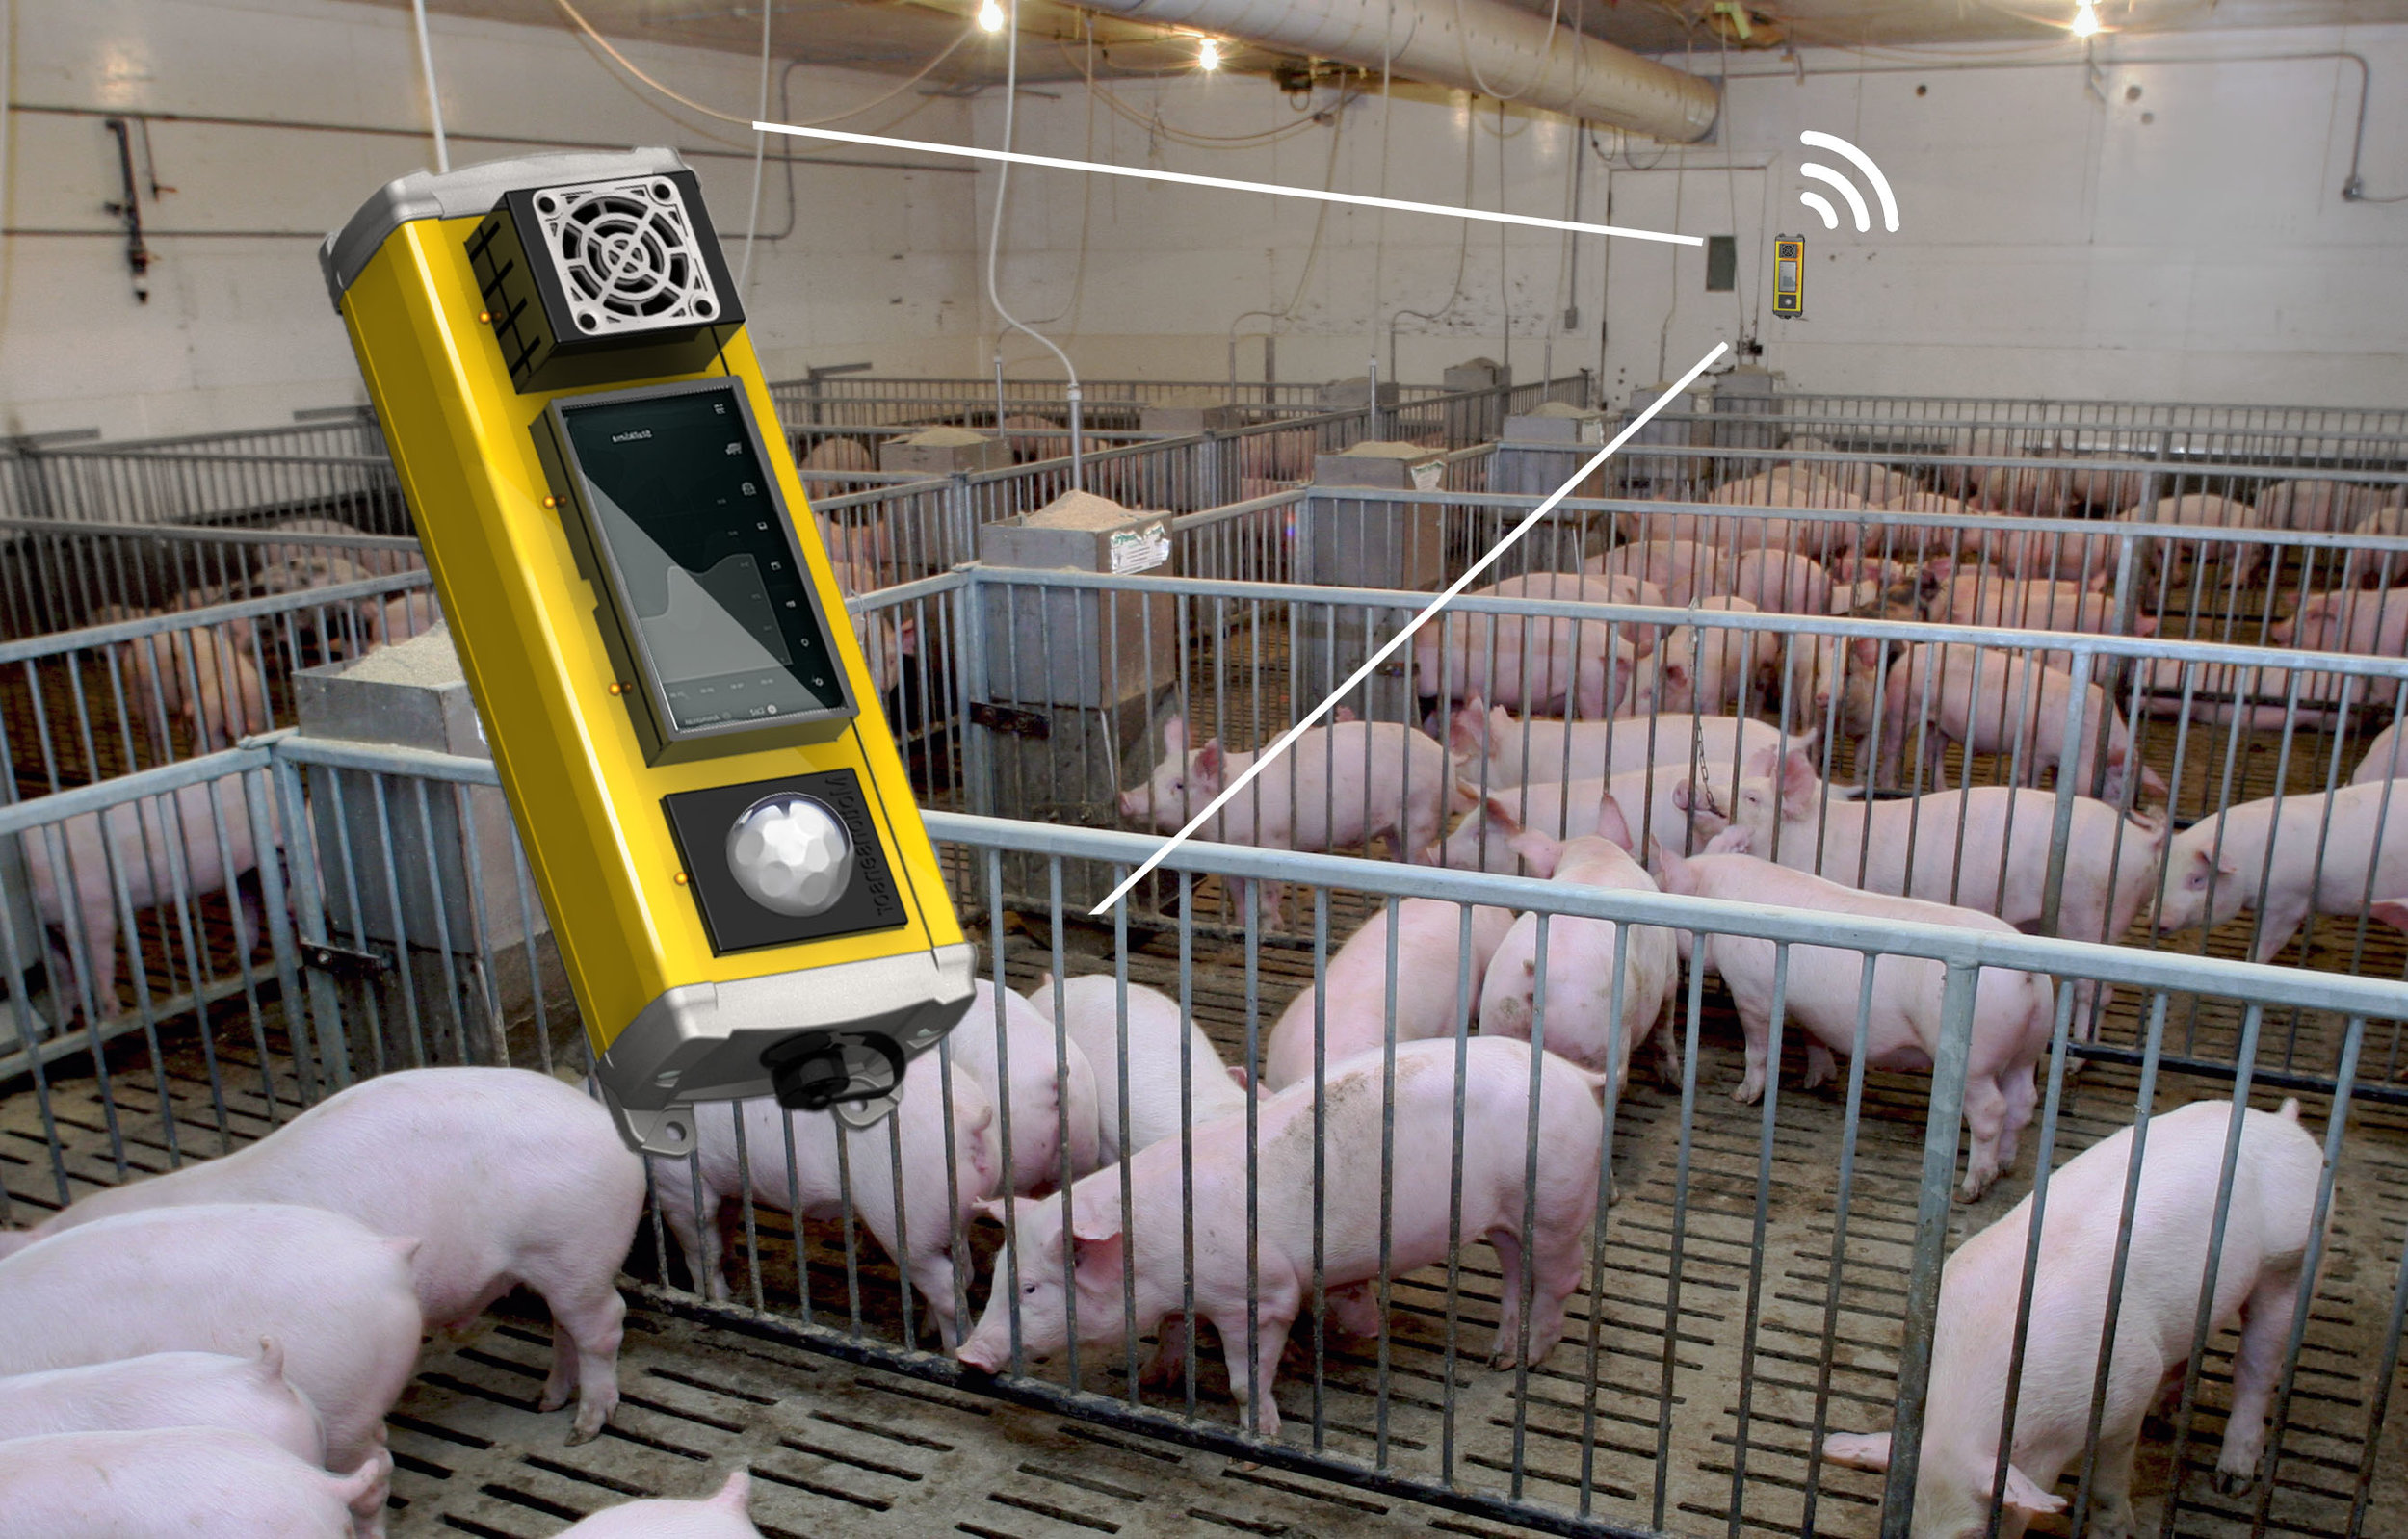 FARM SENSORS - No more unpleasant surprises. Set-up sensors to constantly monitor your animals and control your barns climate automatically. Or use smart measurement tools to track growth rates and medical records of each animal. All data synced. Precision farming at it's finest.<— Barn climate control sensors.